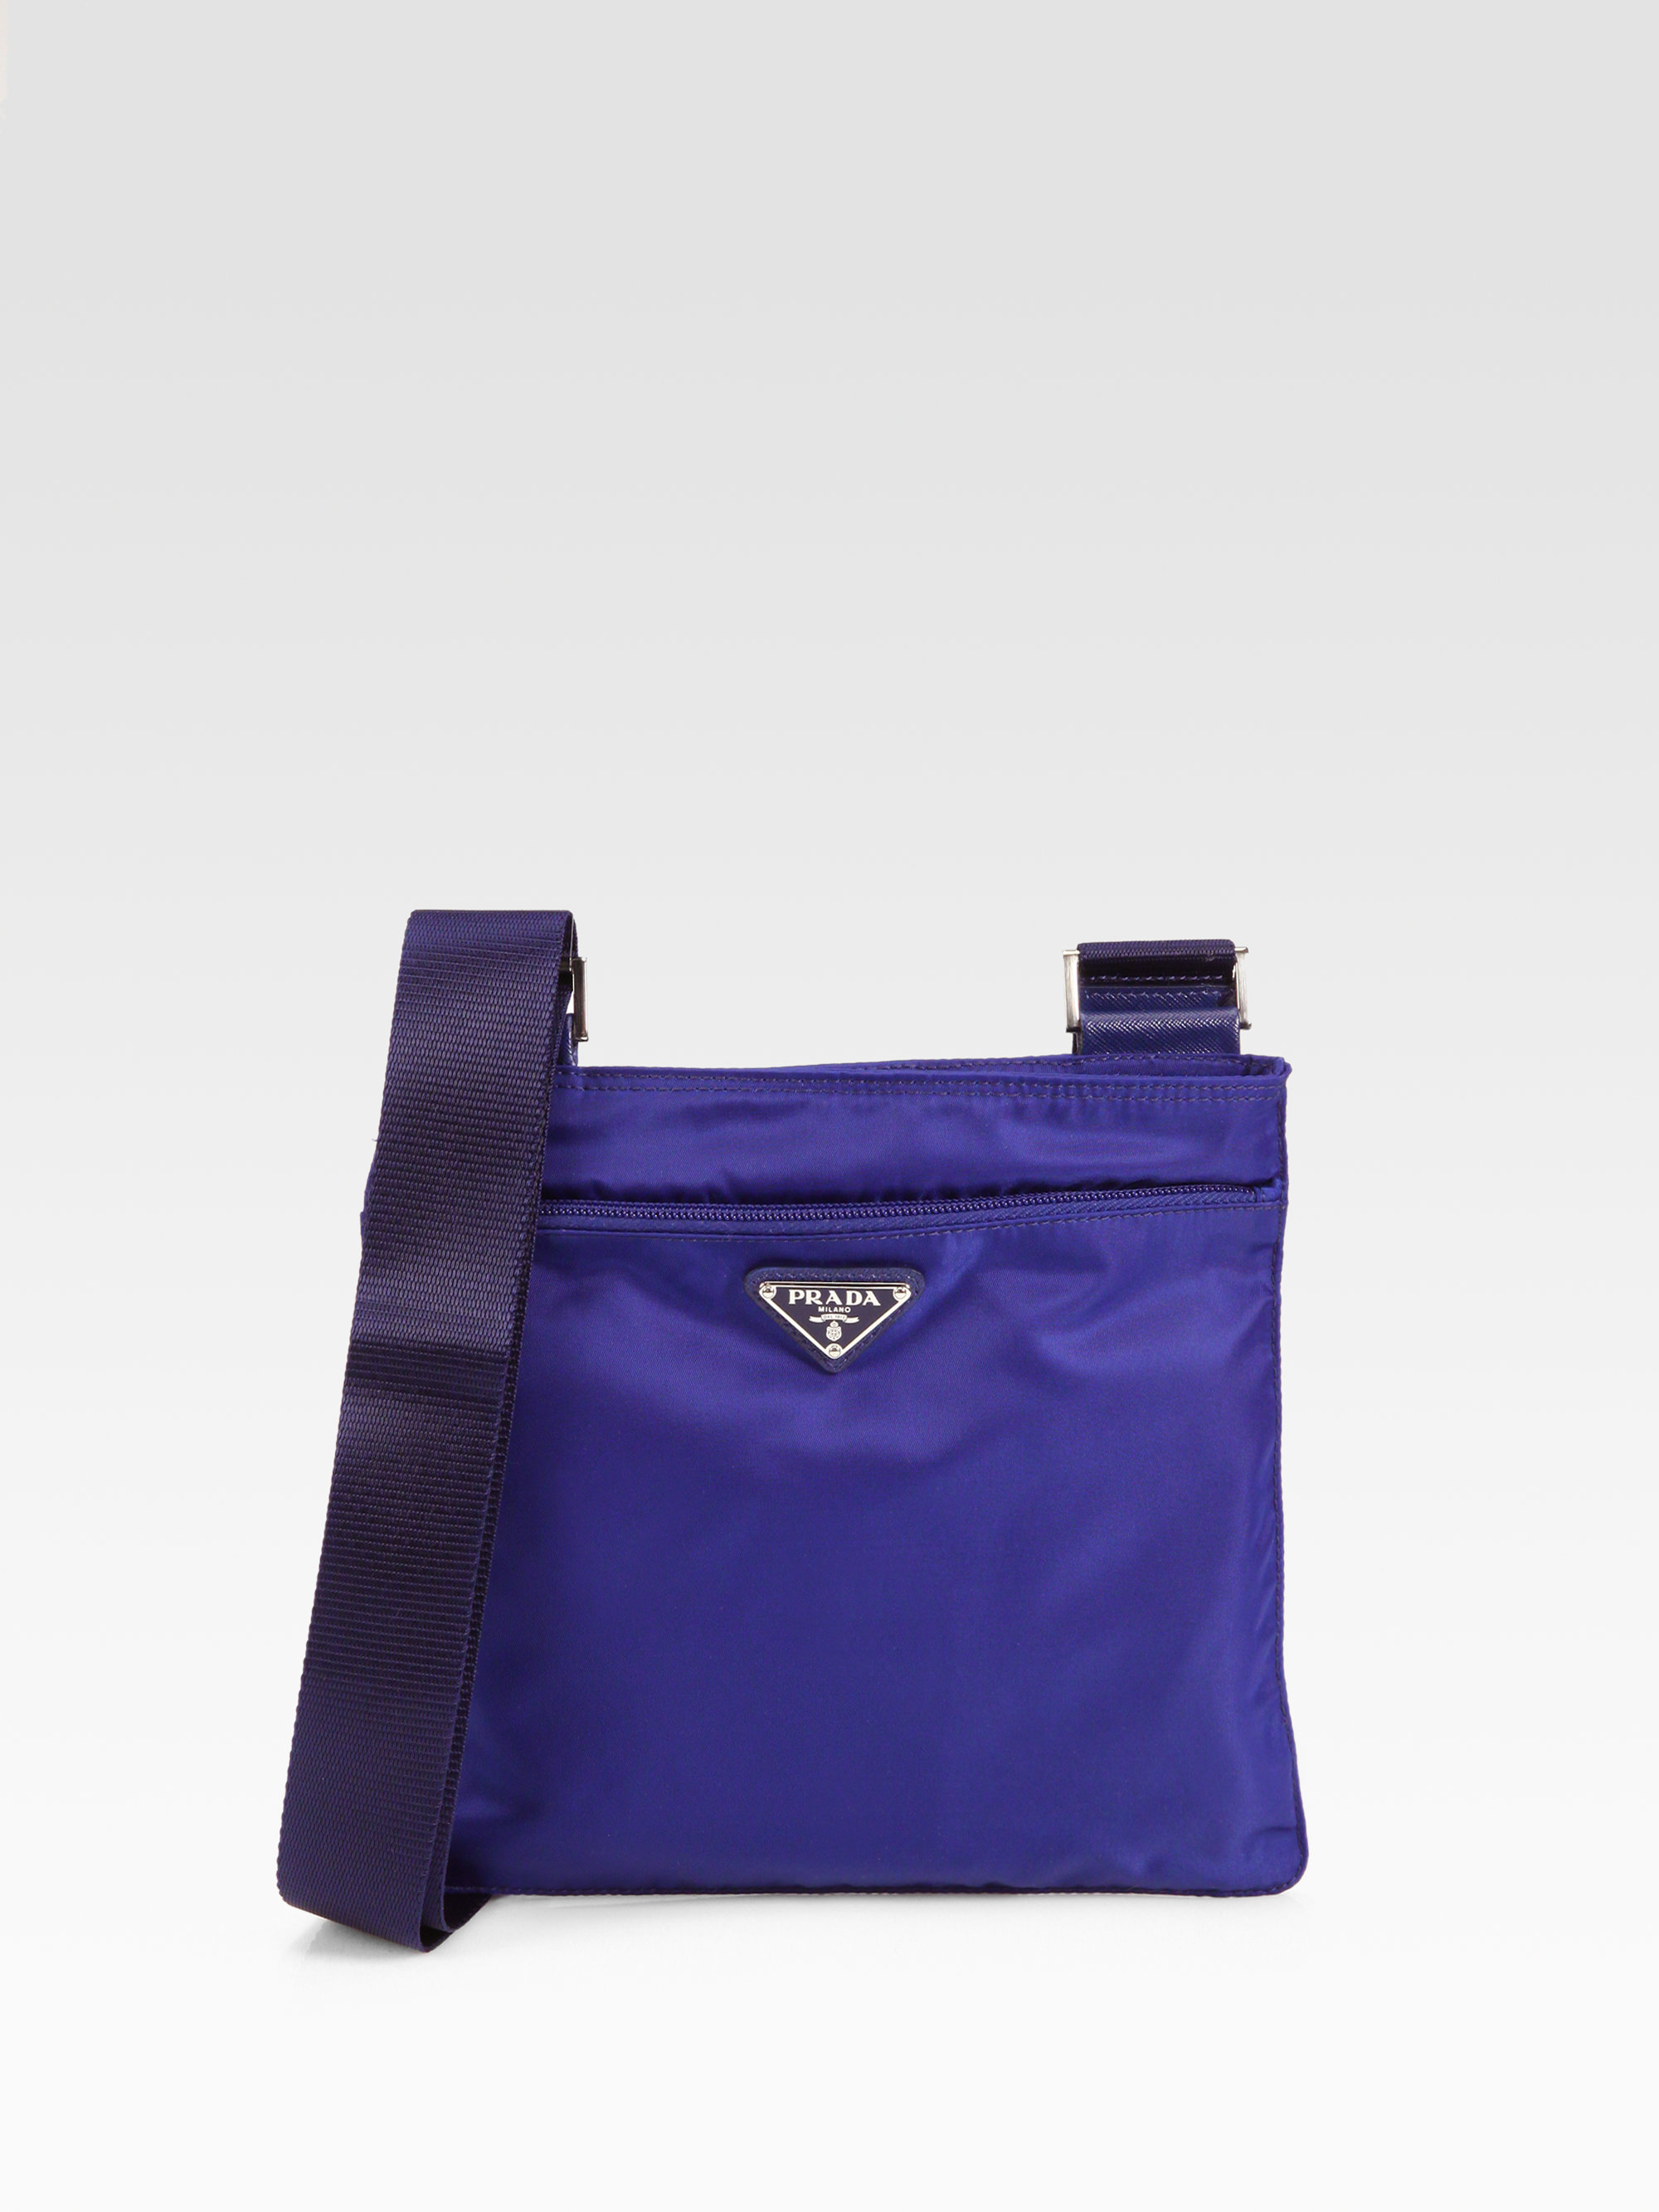 Prada Nylon Messenger Bag in Blue (bluette-blue) | Lyst